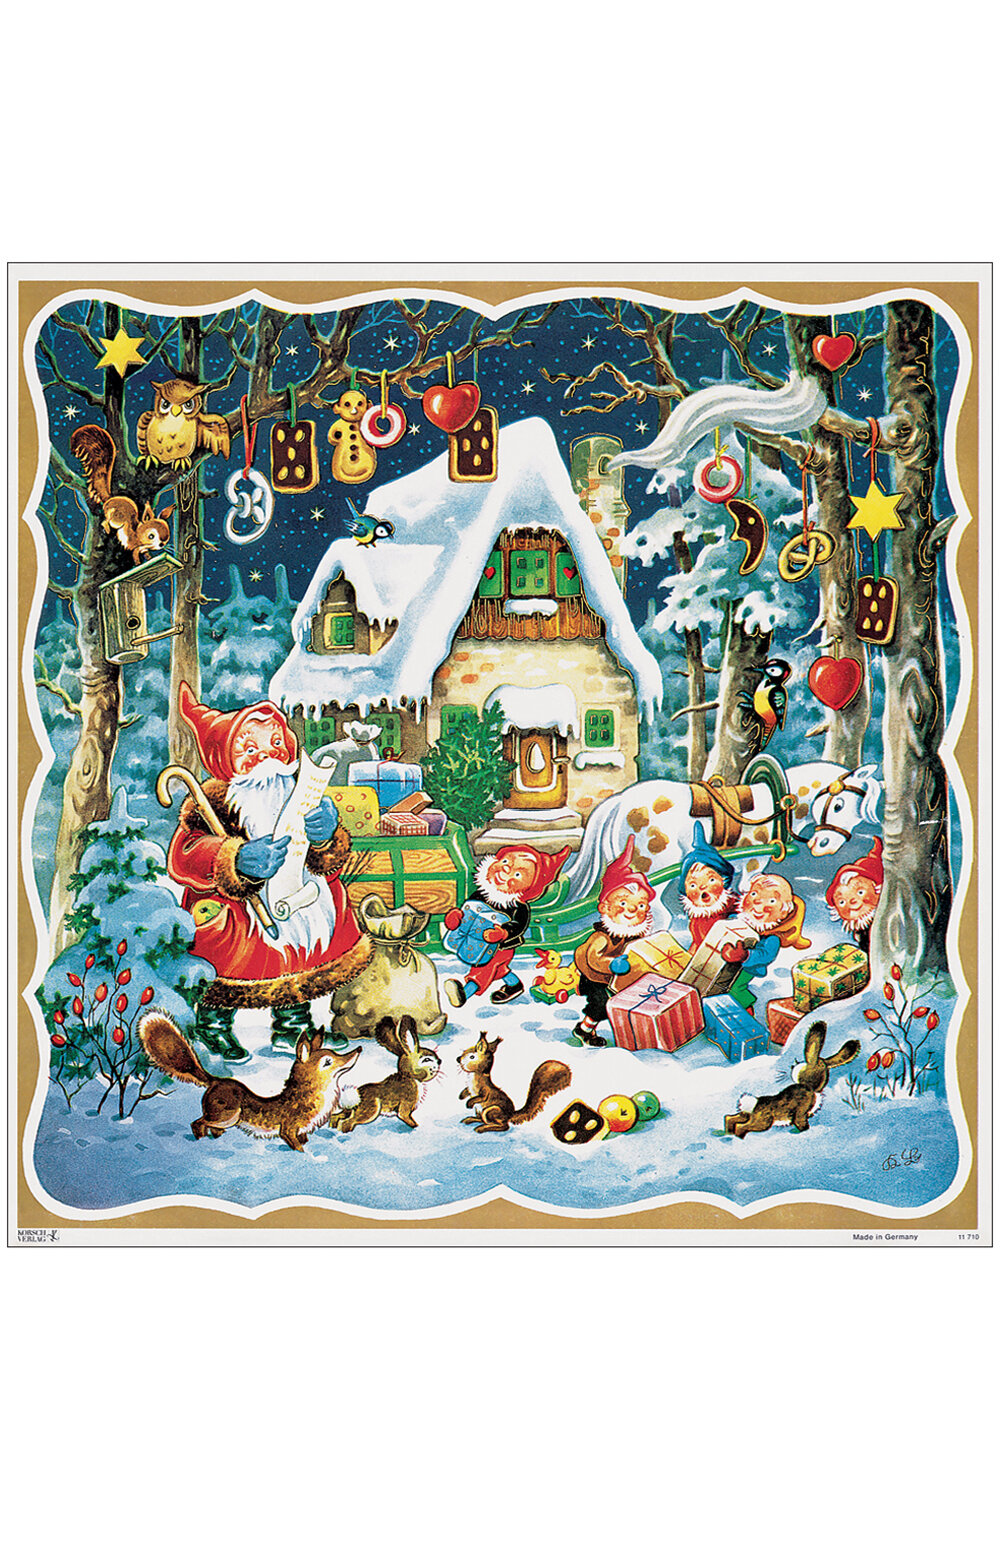 The Holiday Aisle Raci Santa Elves Angels With Gingerbread Motif Advent Calendar Wayfair